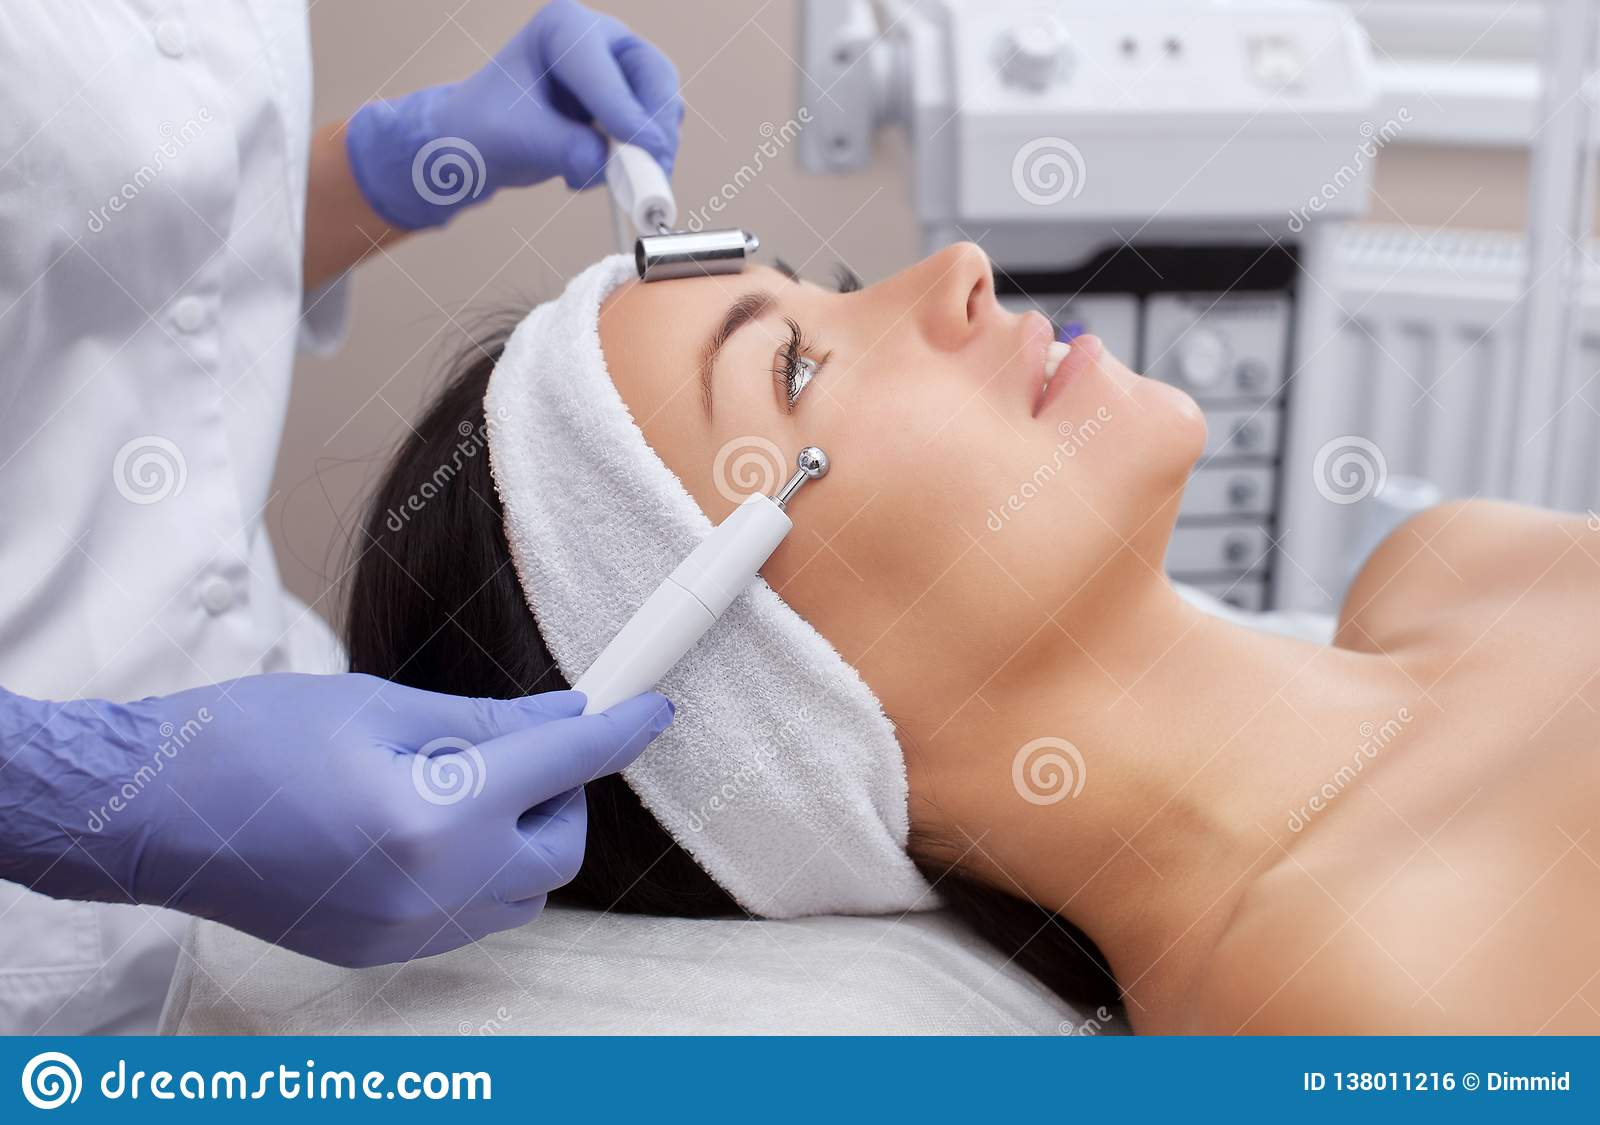 The cosmetologist makes the apparatus a procedure of Microcurrent therapy of a beautiful, young woman in a beauty salon